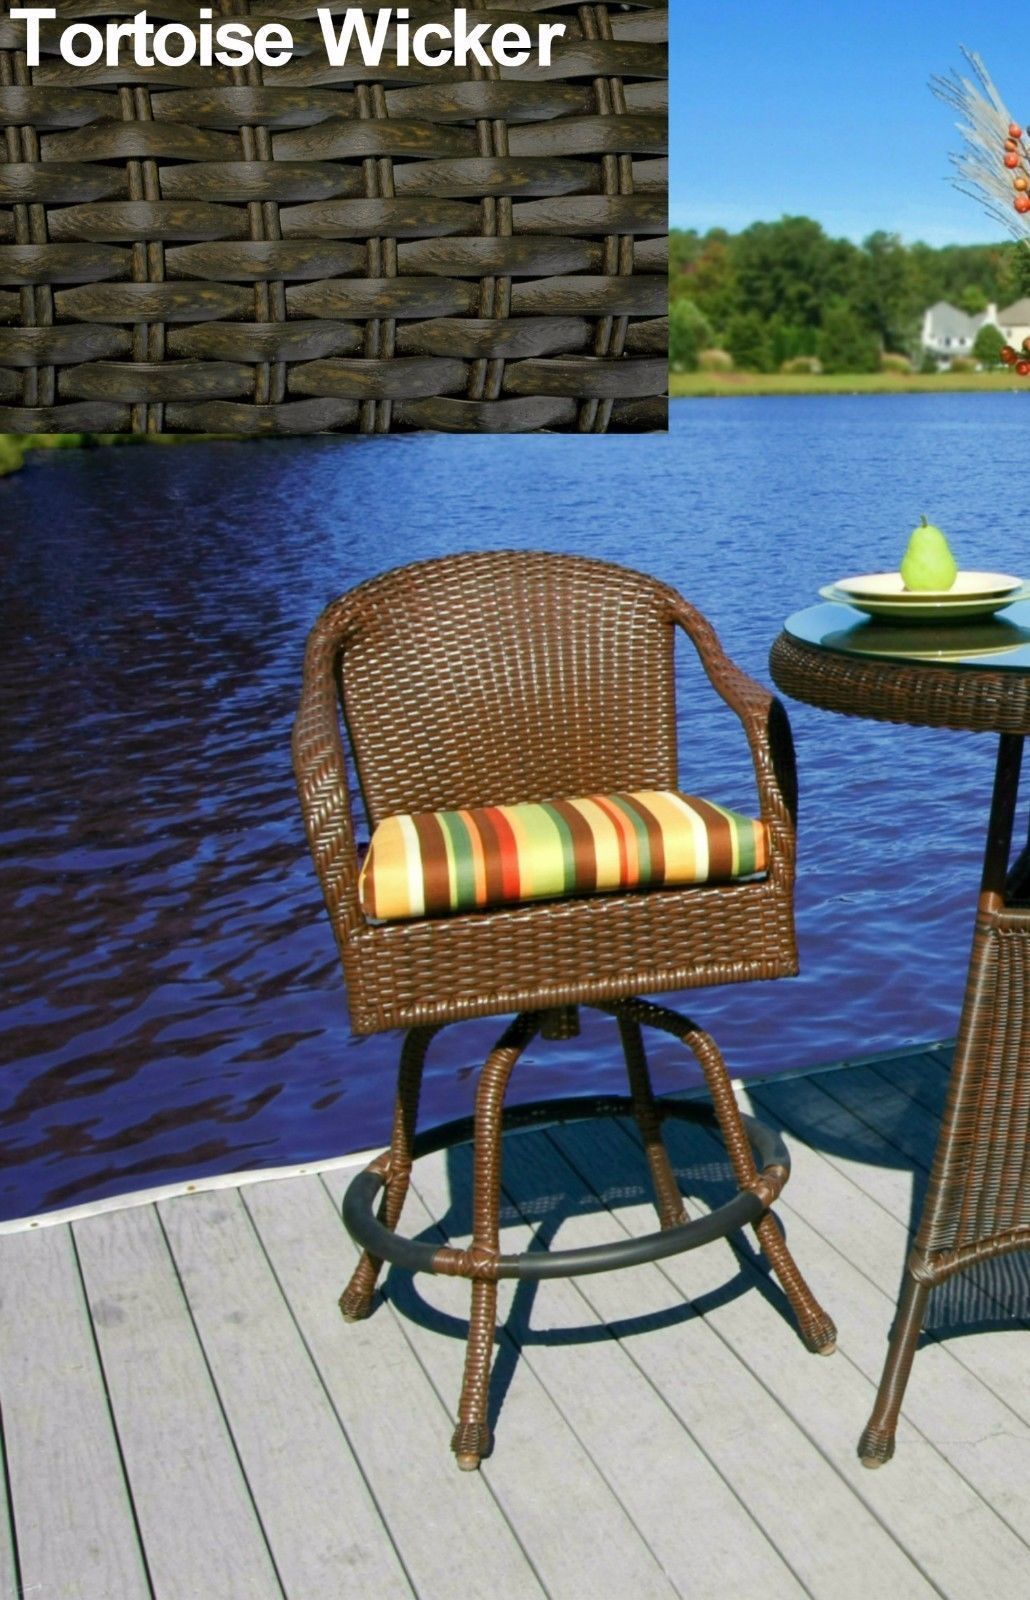 #196 - Stylish Outdoor Patio Garden Barstool in Tortoise Wicker w/Color Fabric Choice